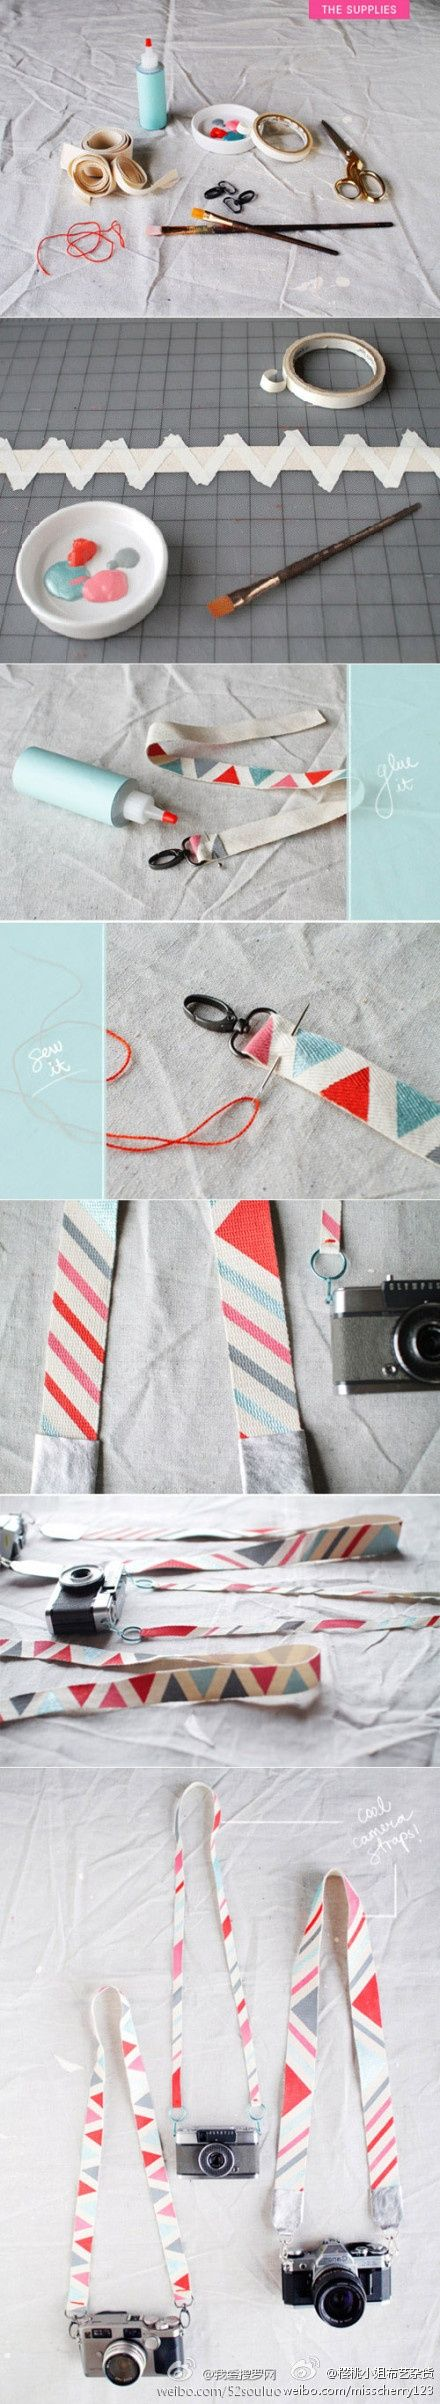 best diy images on pinterest good ideas craft ideas and